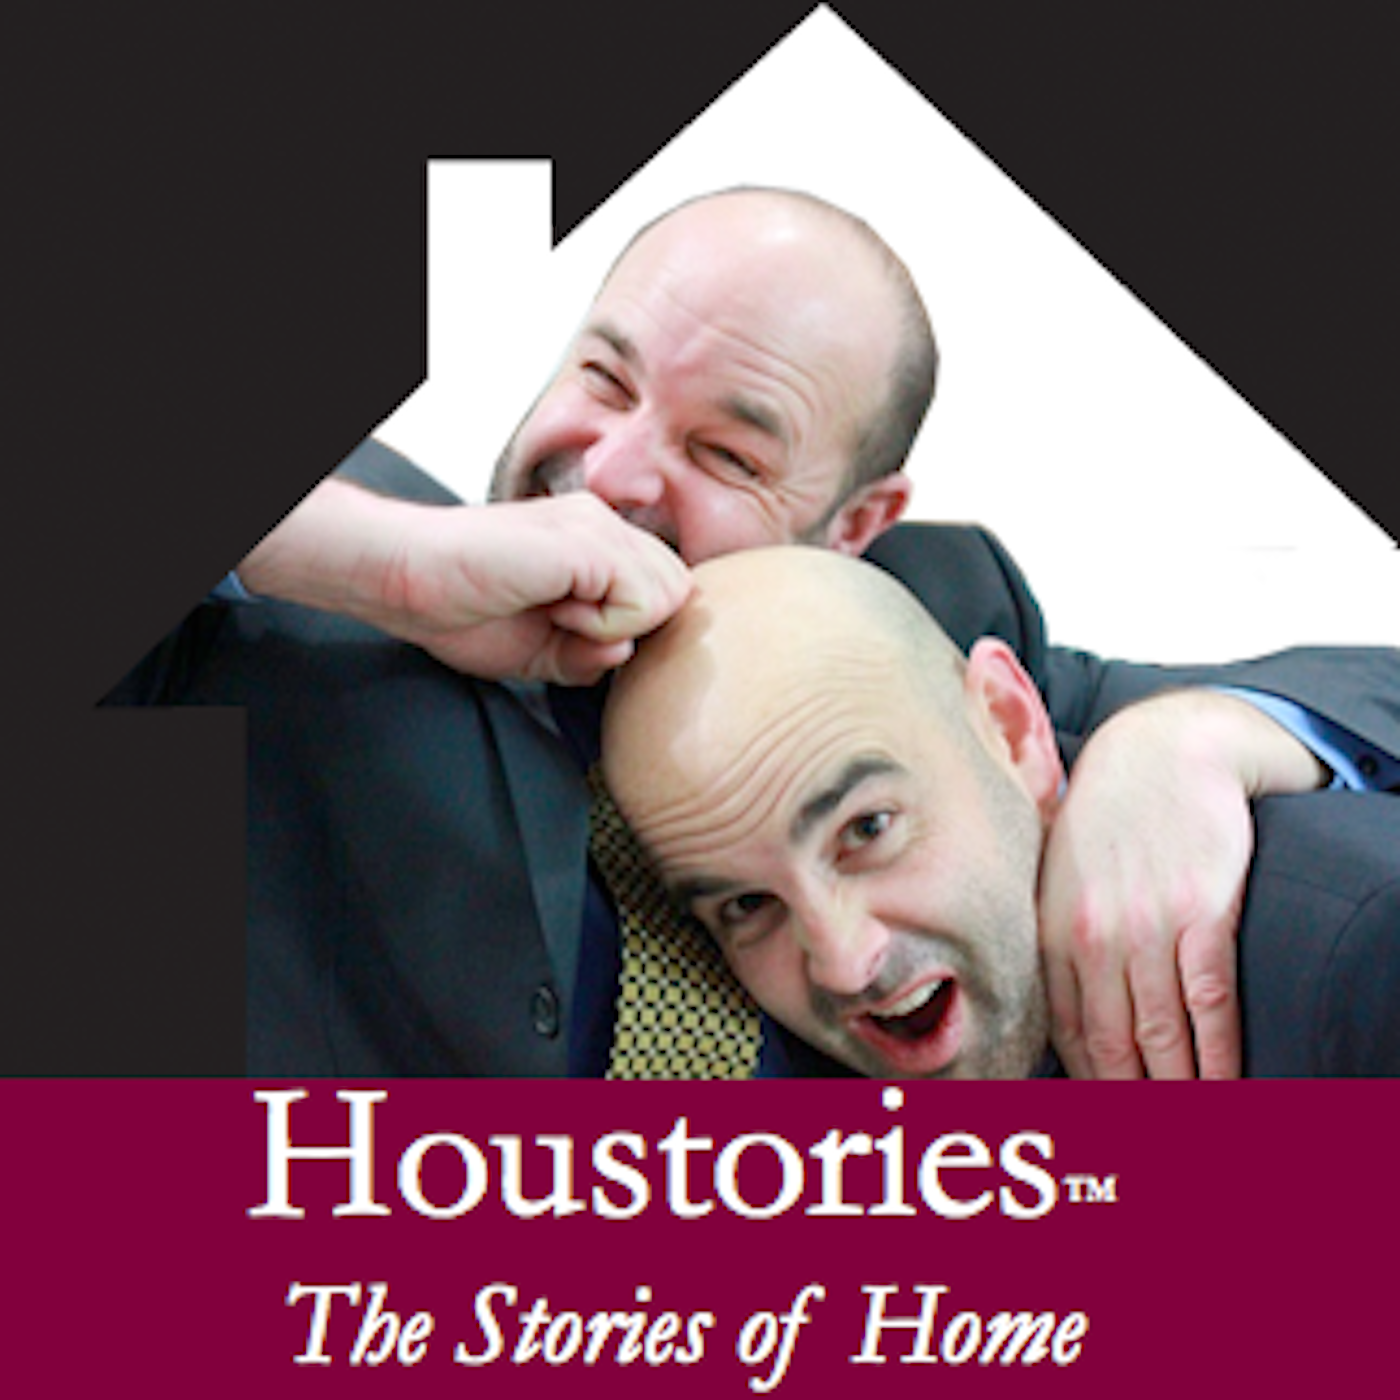 Houstories: The Stories of Home